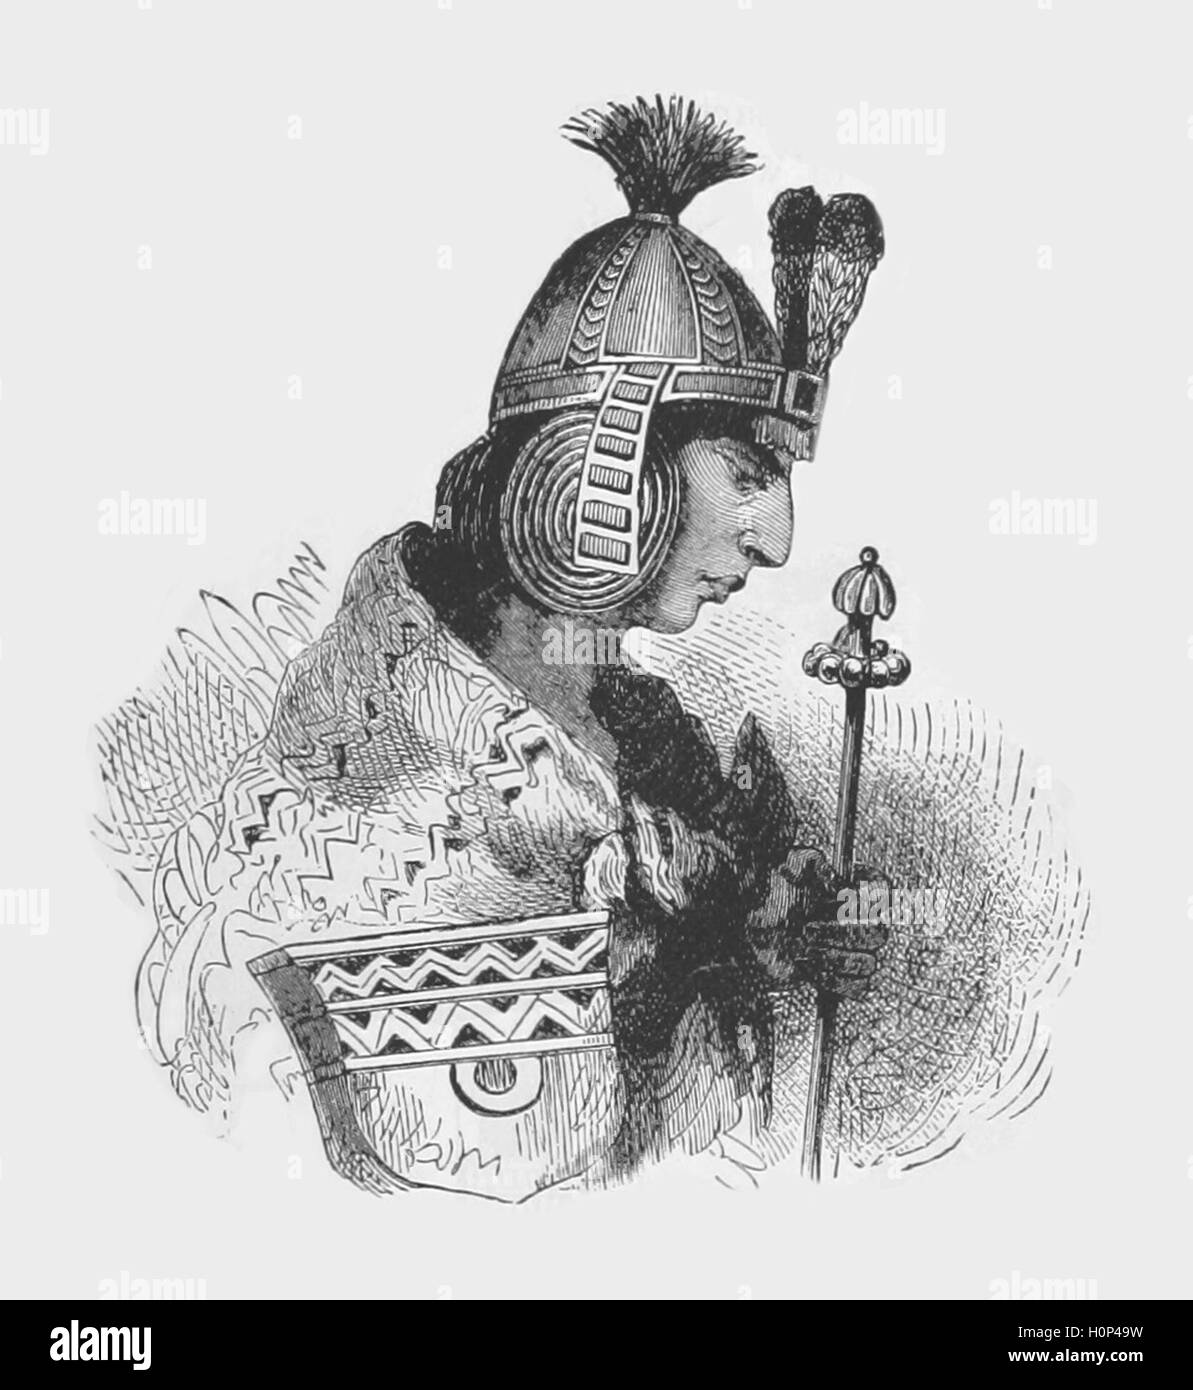 Huascar the 13th Inca emperor  Huascar the 13th Inca emperor Waskar Inka, of uncertain meaning, said to be related - Stock Image